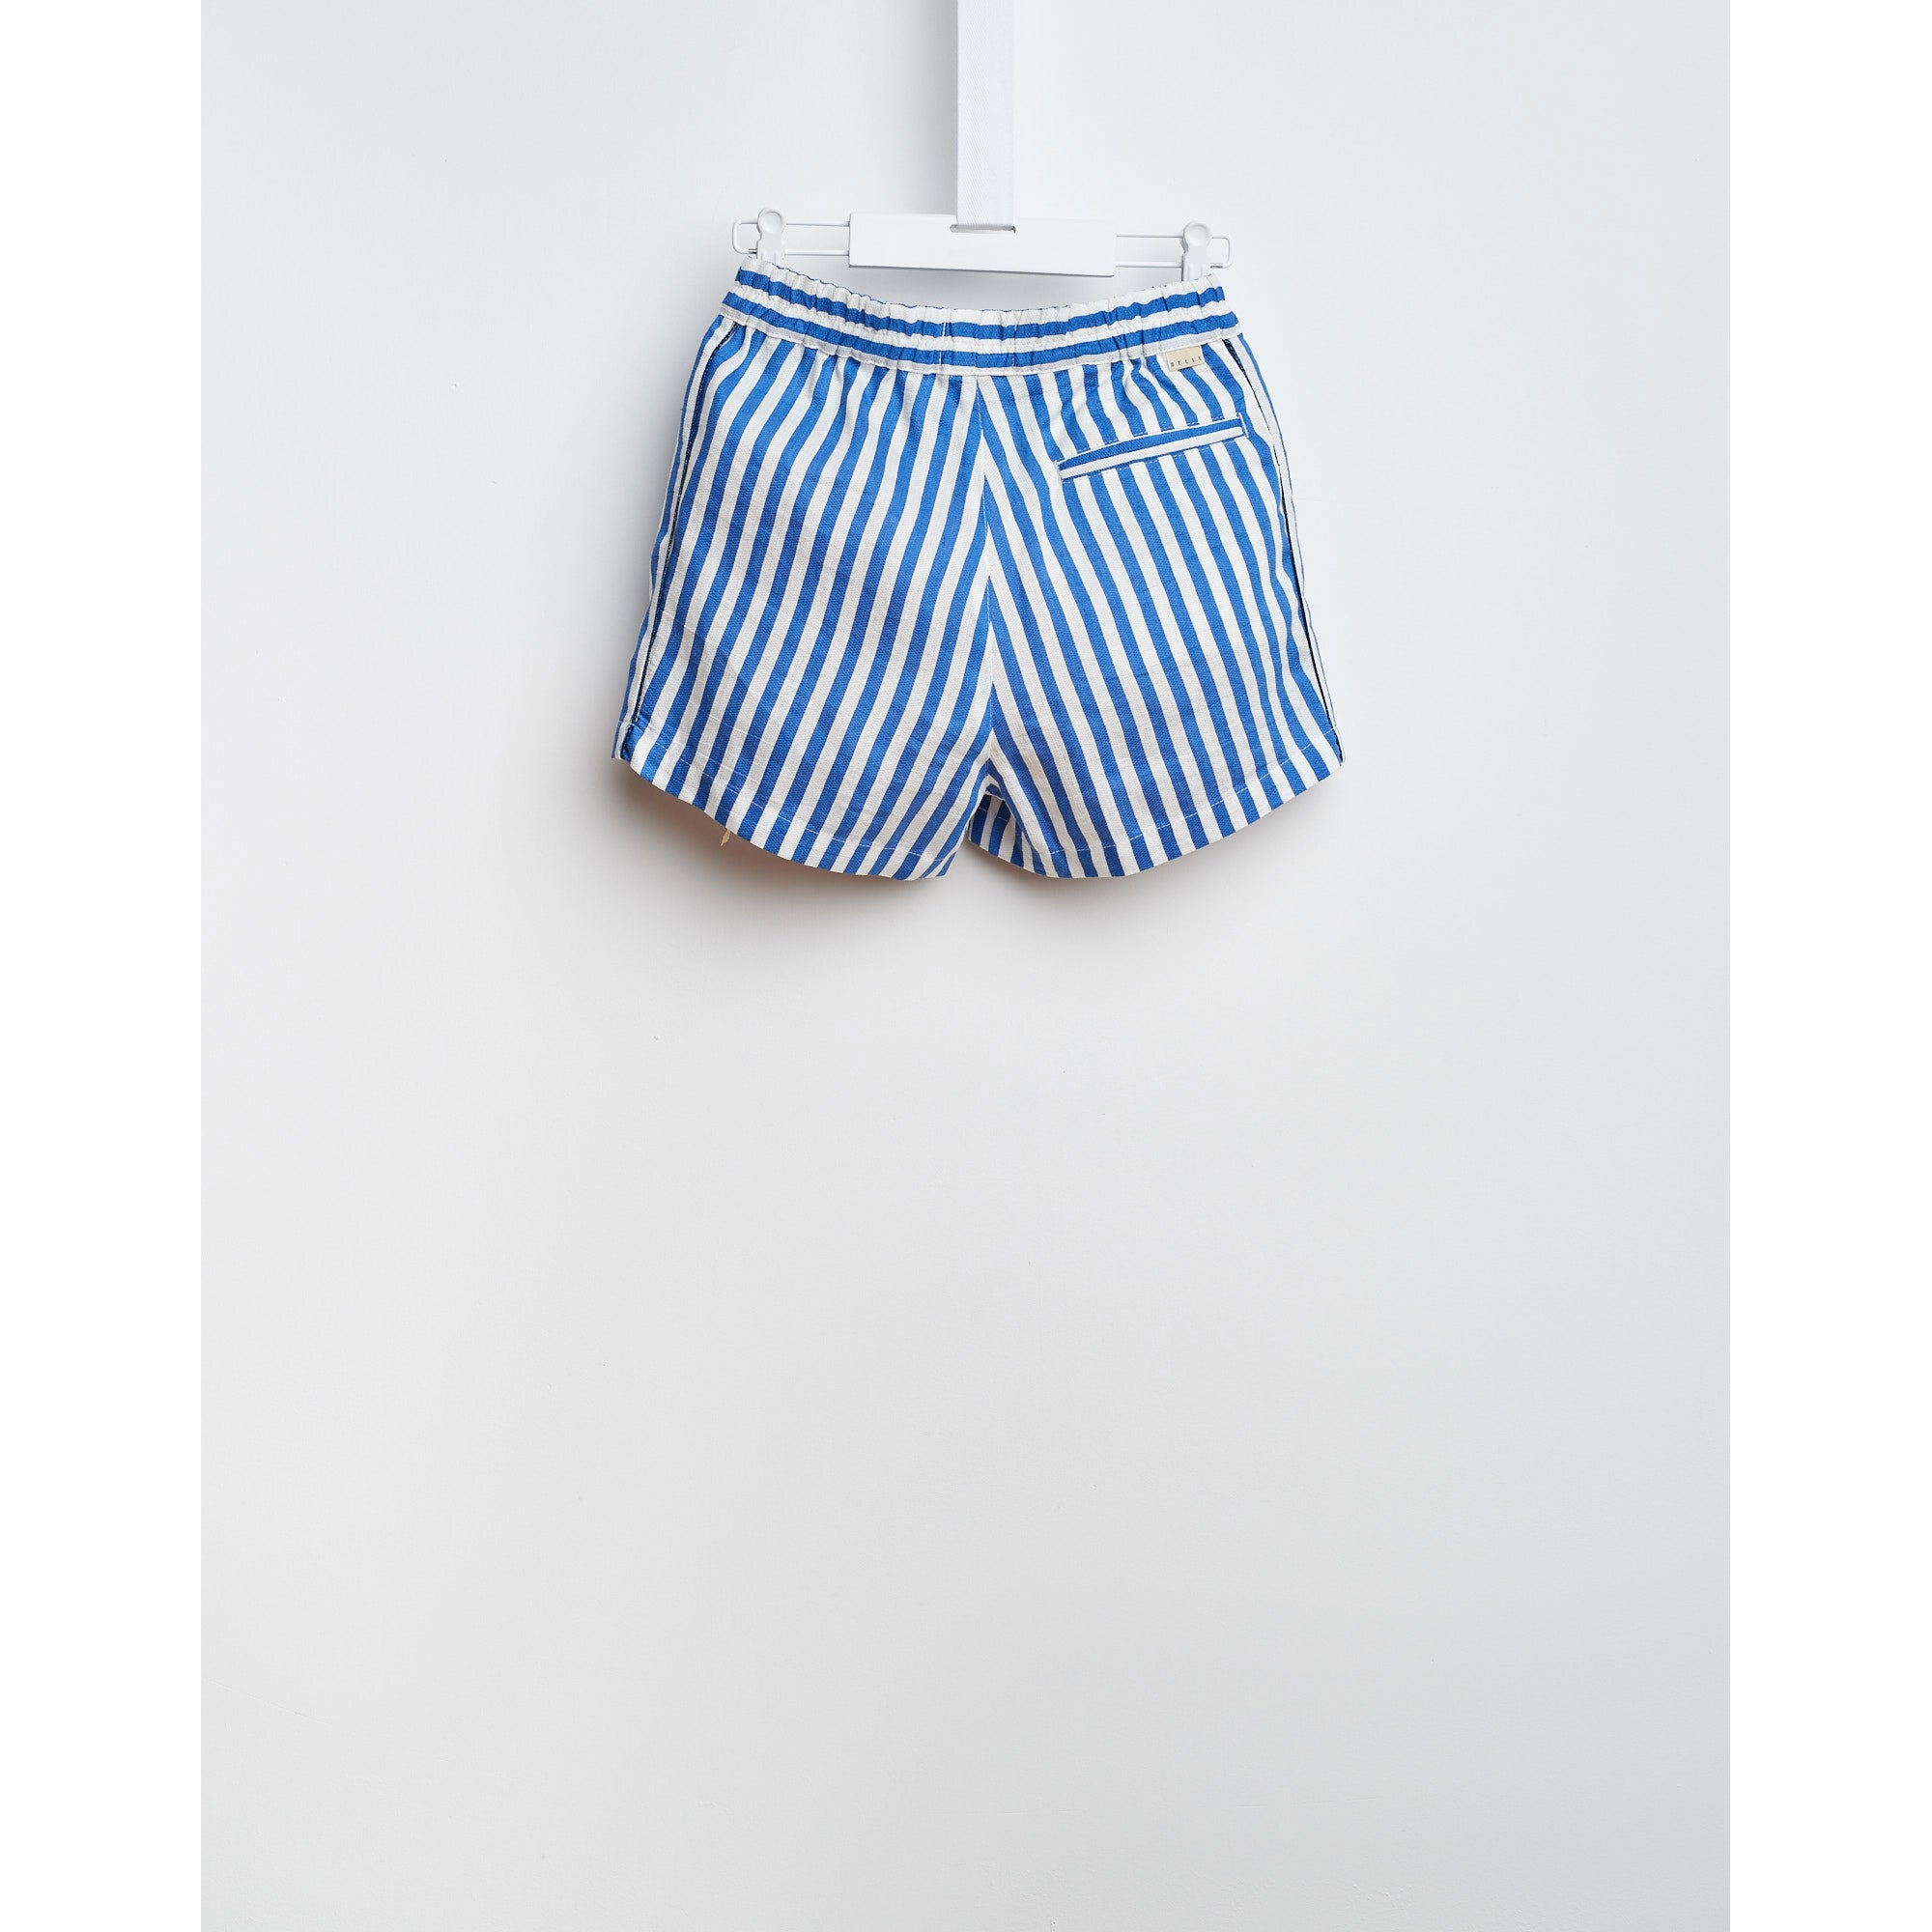 Bellerose Blue Stripe Shorts